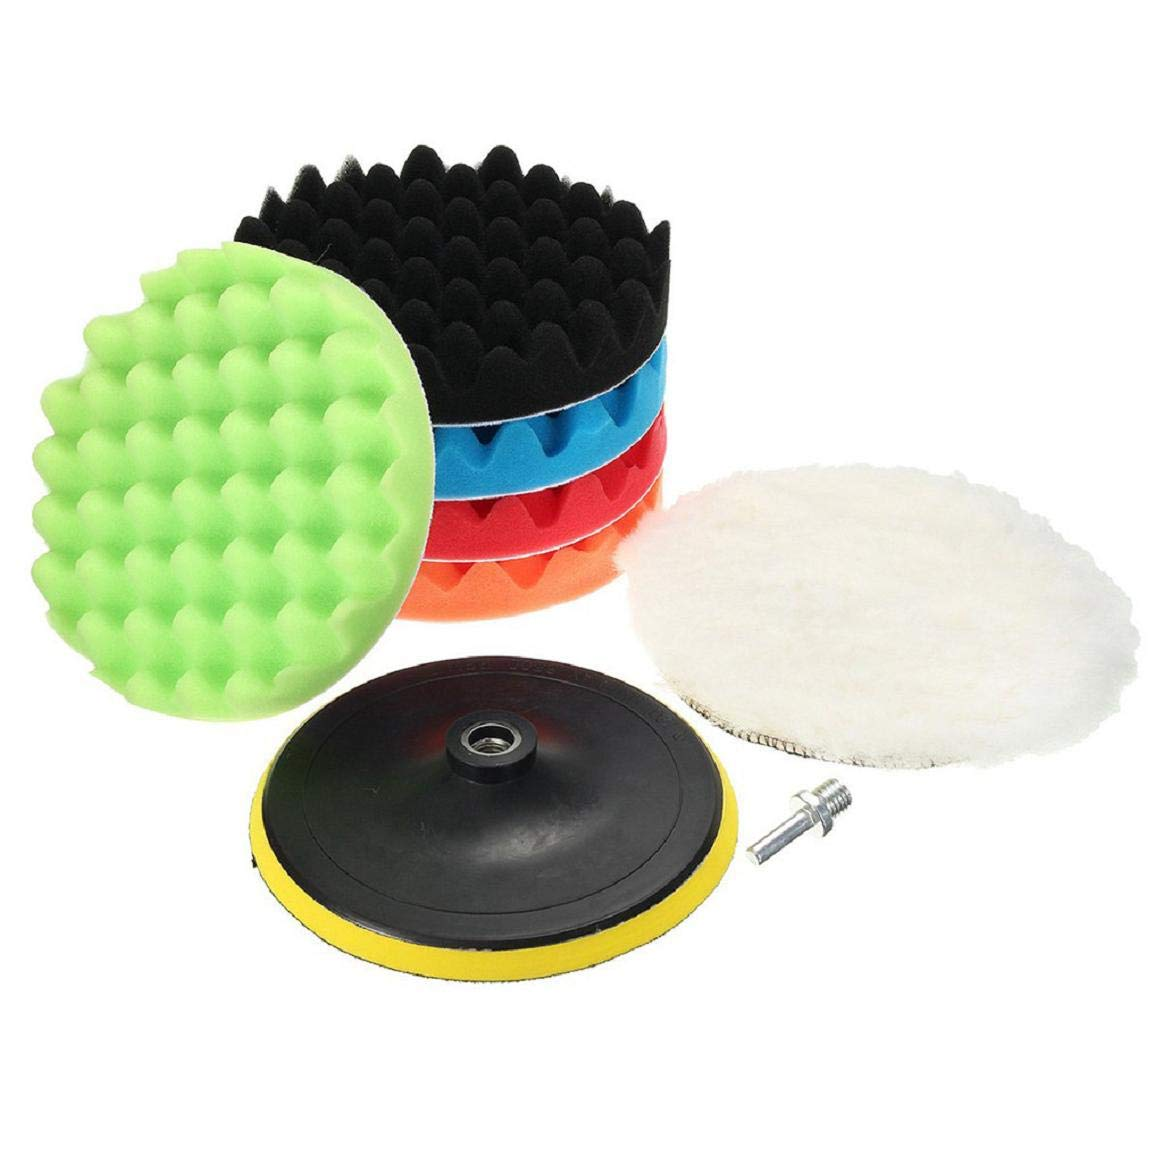 Cleaning products with 15-25 degrees water Vaycally Sponge Polishing Waxing Buffing Pads Kit Compound Auto Car Polisher 3~7 mini-Buffing Pad Kit With 6 Pads,1 woolen buffer,1 adhesive backer pad